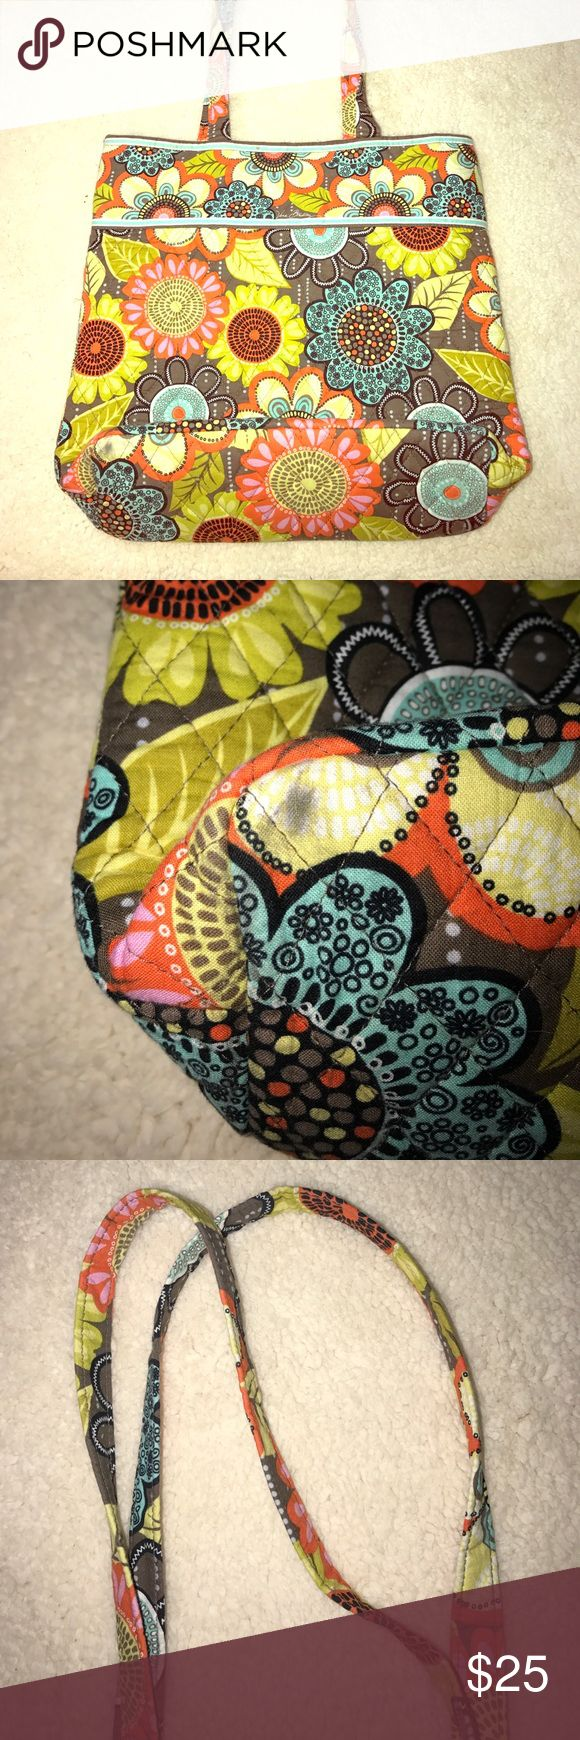 Gorgeous Vera Bradley Tote!  Great used Condition A beautiful vera Bradley tote bag perfect for school or work. Teals,  corals, yellows, and browns saturate this adorable bag. One noticeable mark on the bottom of the bag is shown in picture. Vera Bradley Bags Totes